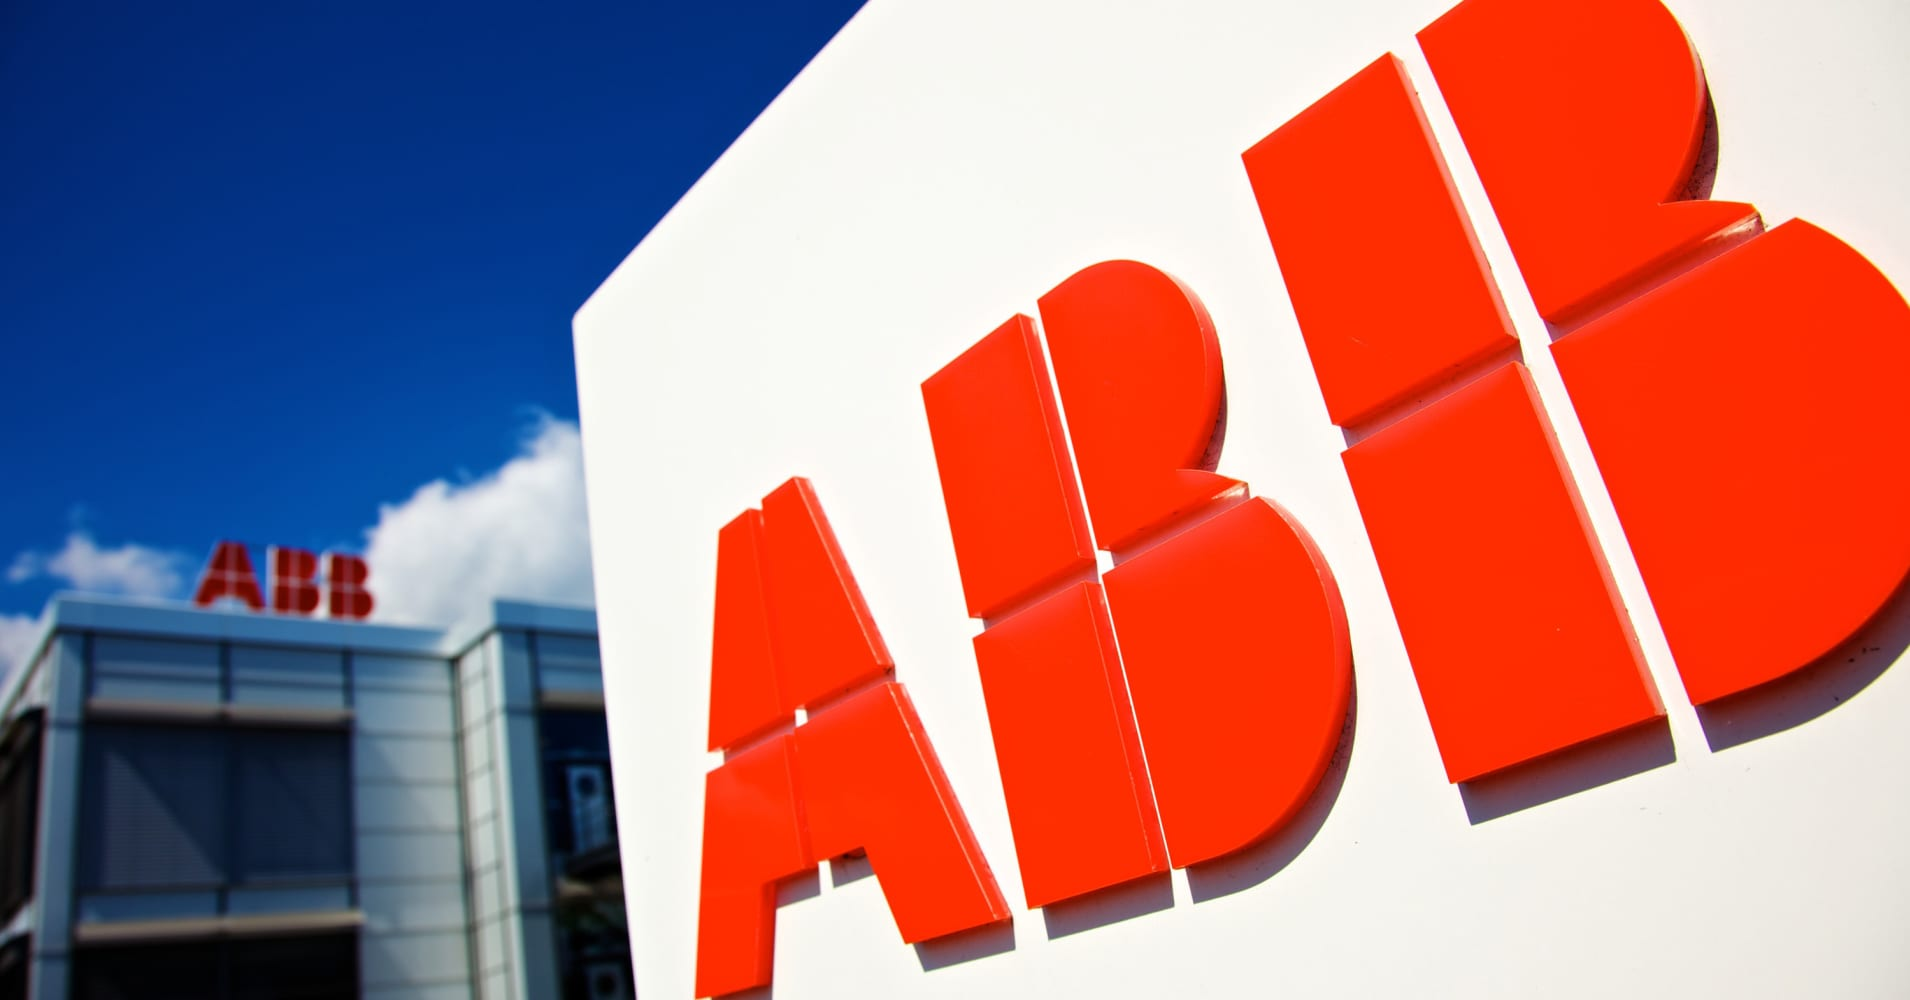 China's manufacturing sector has 'great need to automate,' says ABB chairman